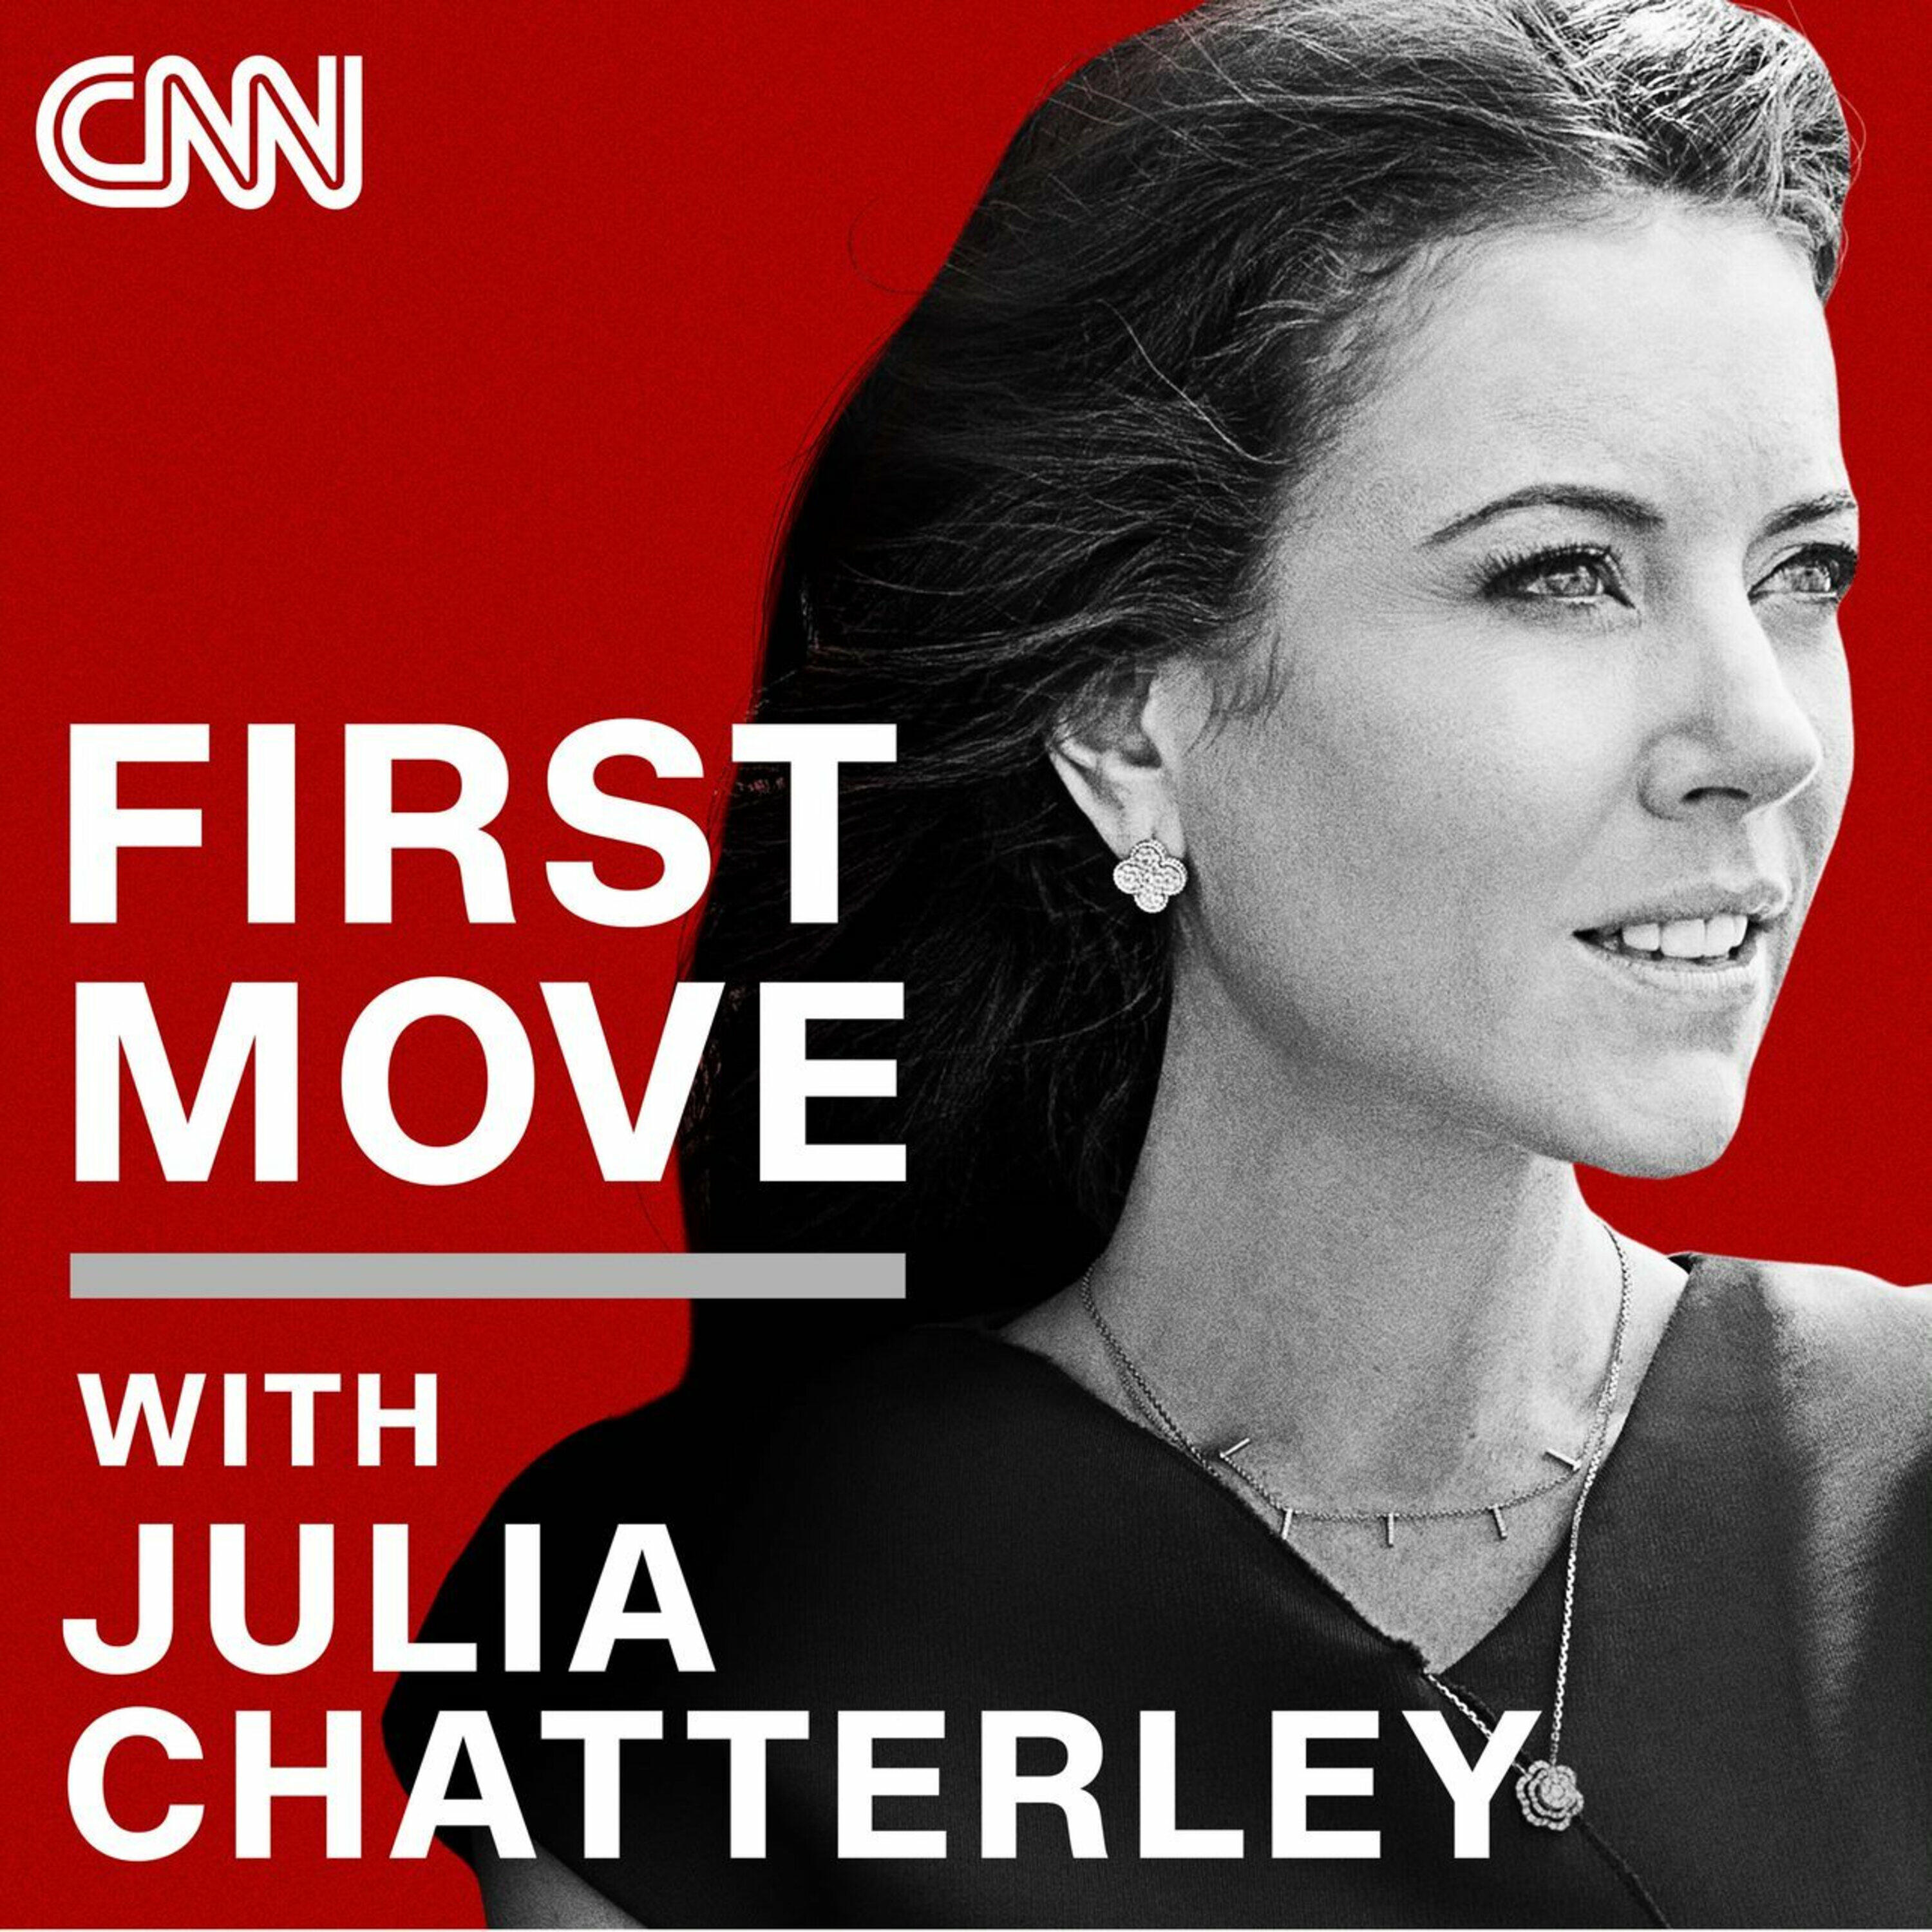 First Move with Julia Chatterley